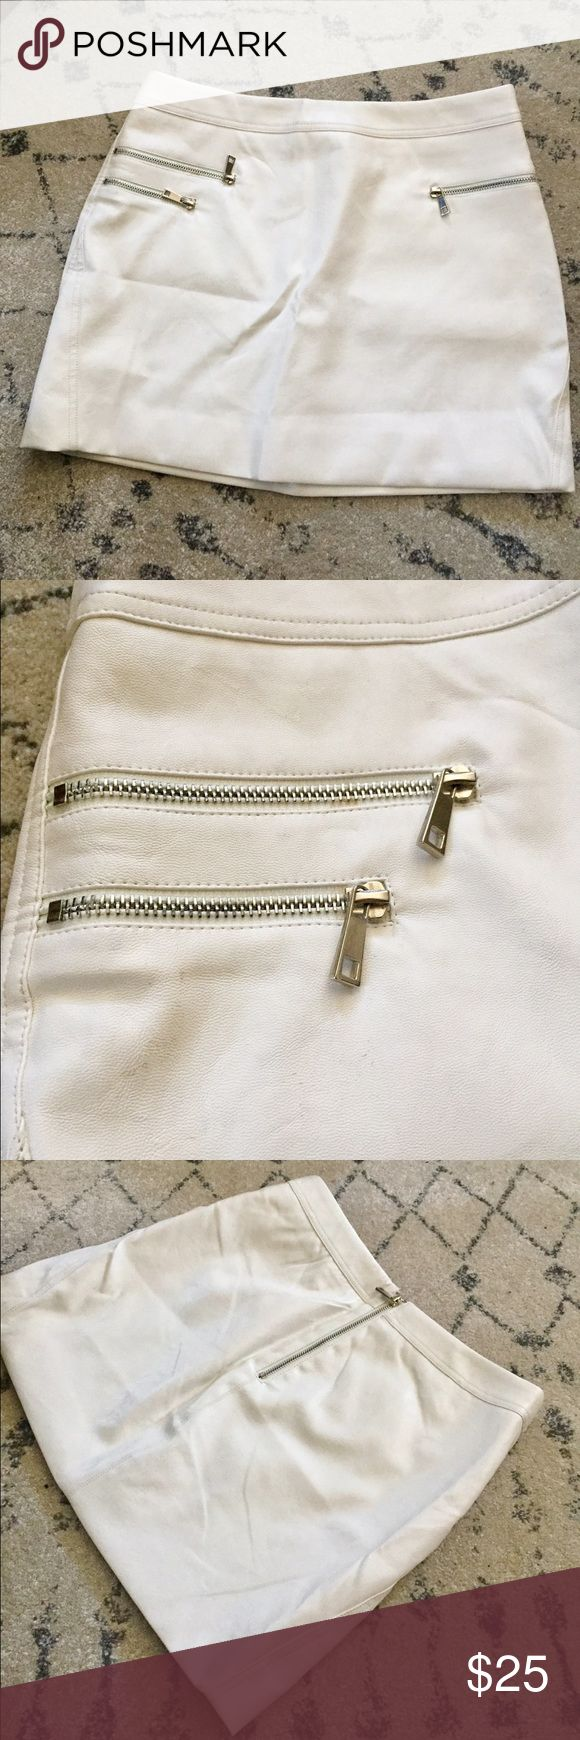 Faux leather, white mini skirt! Super cute, only worn twice. Slightly off white, faux leather mini skirt. Super cute with an all white look! Forever 21 Skirts Mini